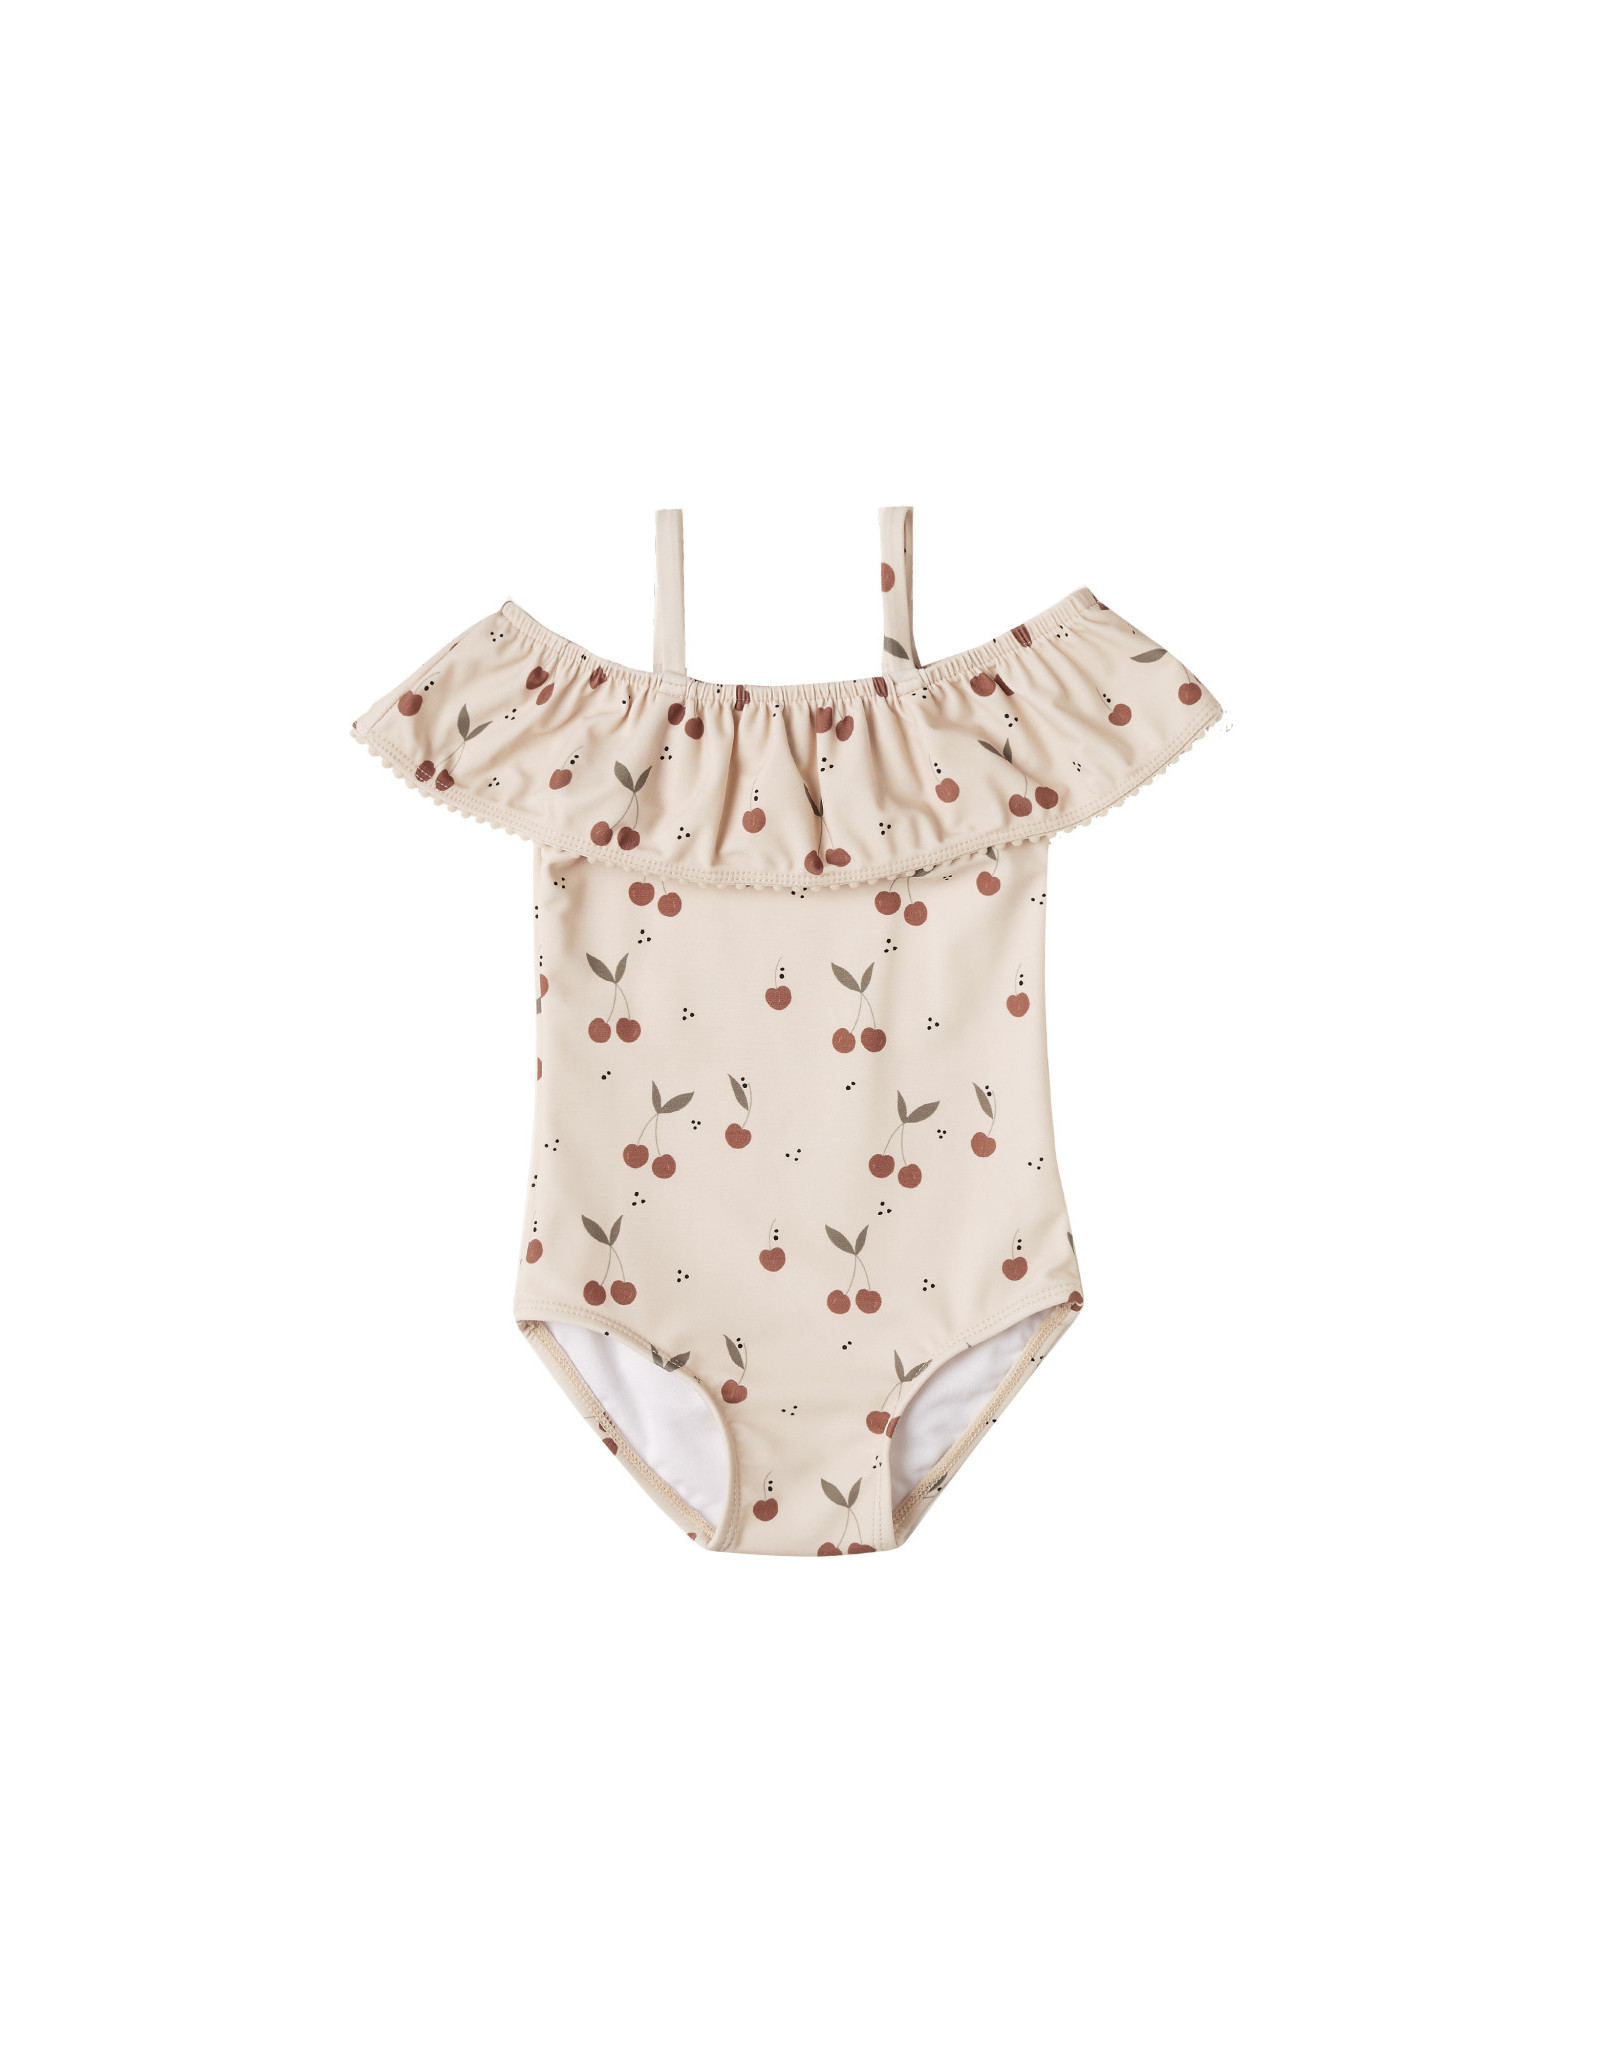 Rylee + Cru Off the Shoulder One Piece Swimsuit, Cherries